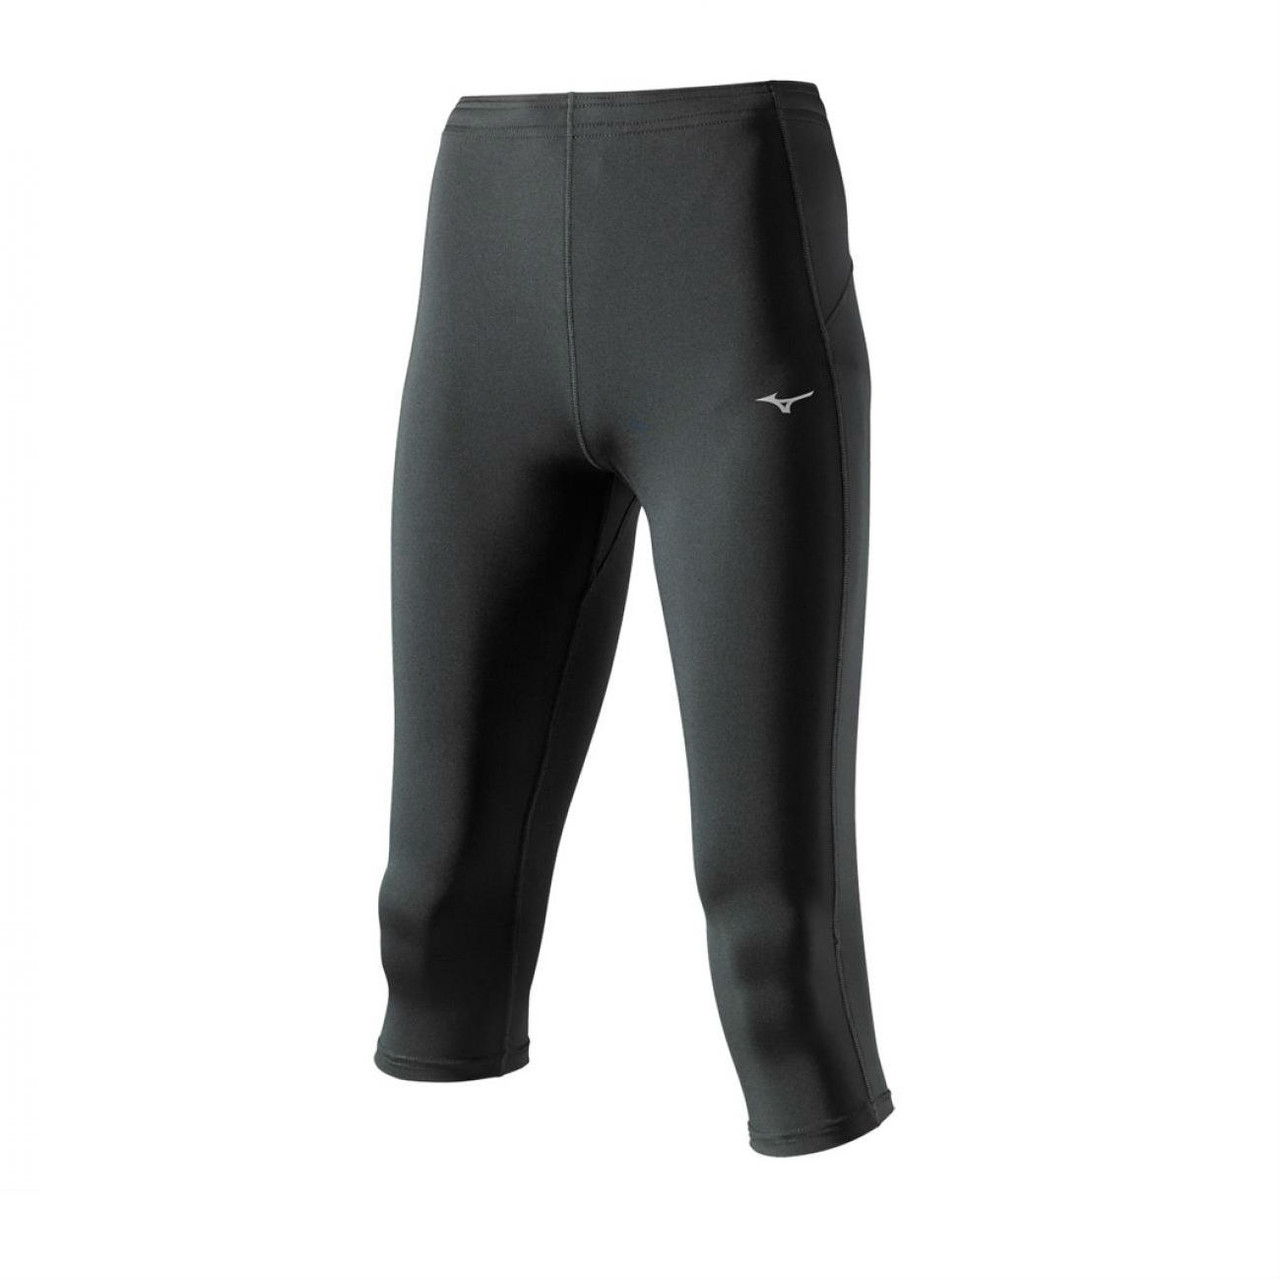 Тайтсы MIZUNO 3/4 Core 3/4 Tights J2GB5251-09